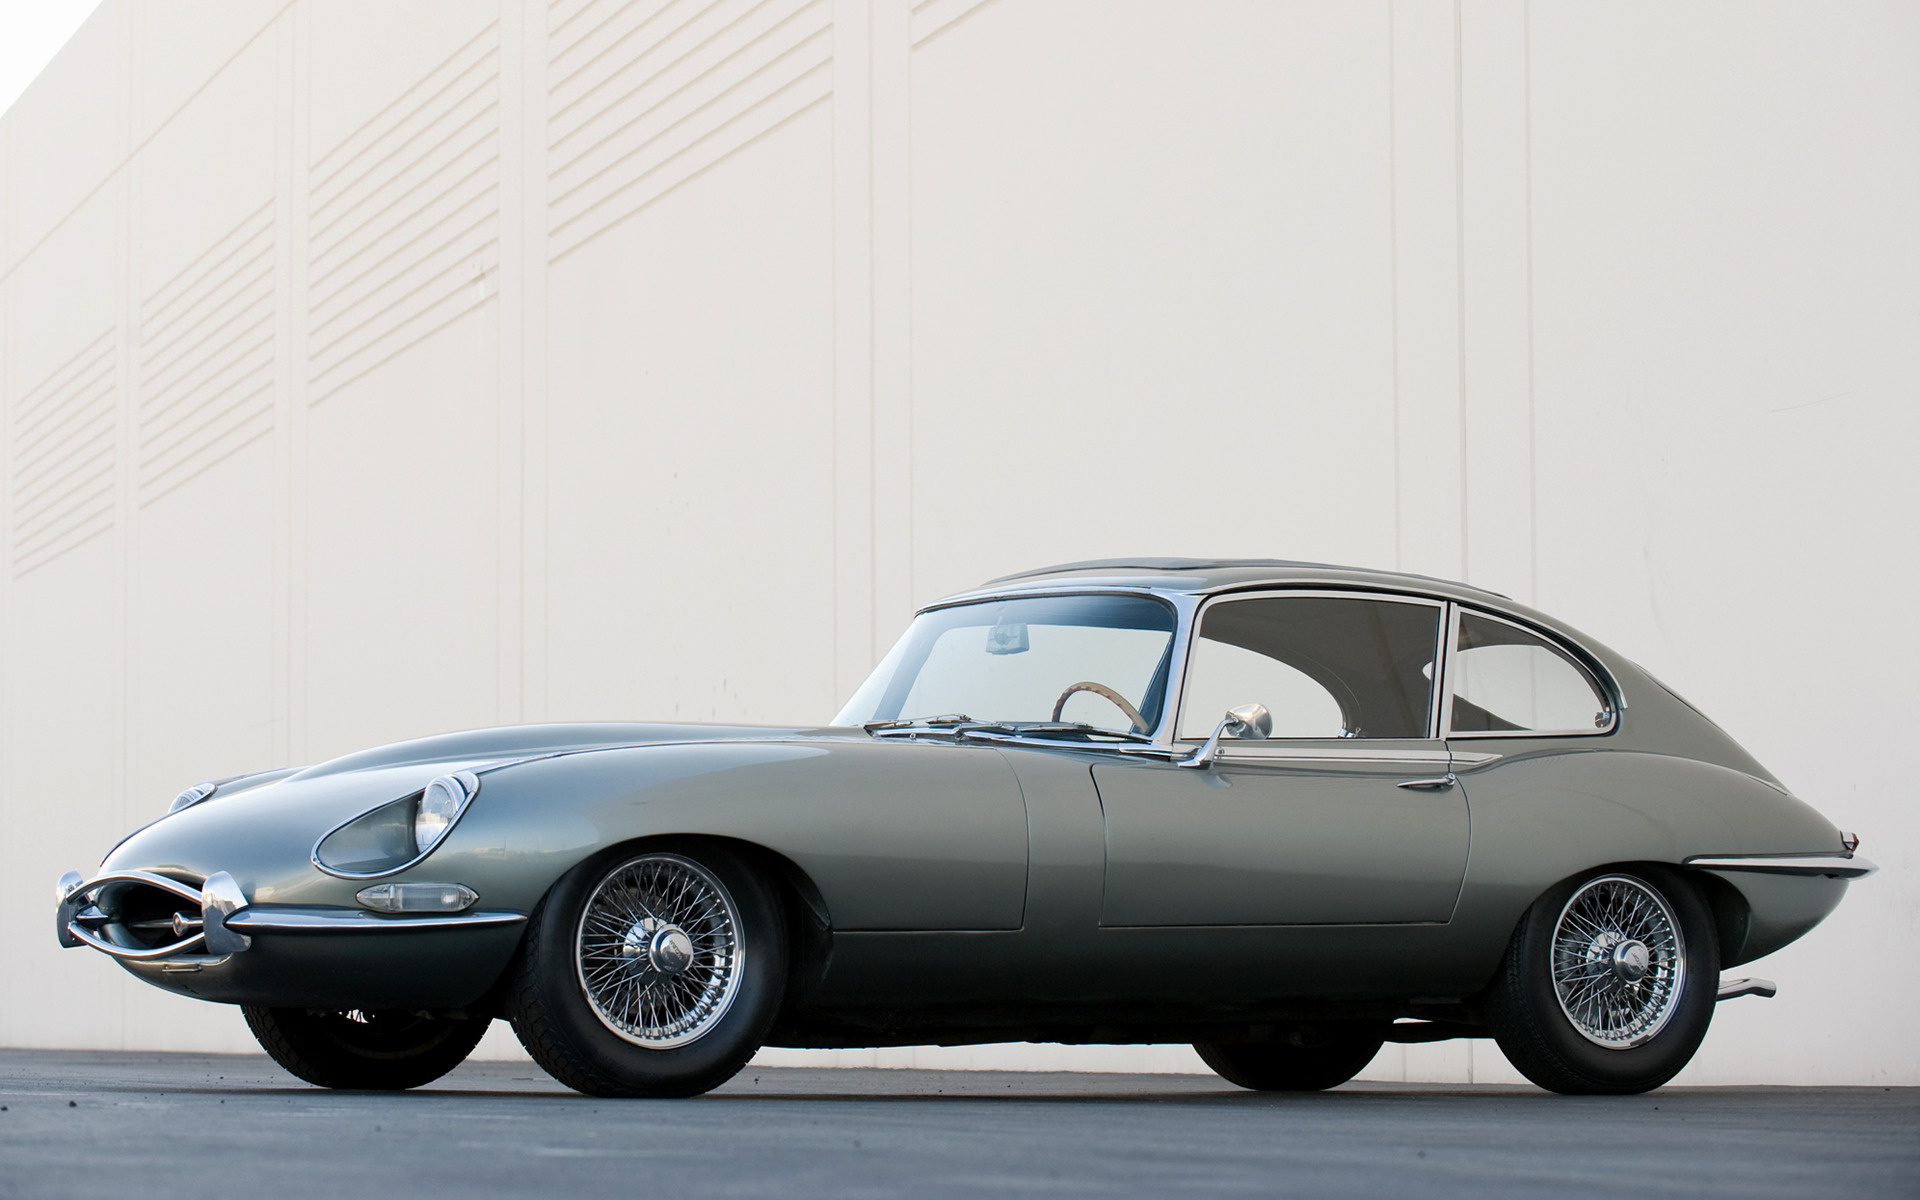 What Is Mopar >> 1966 Jaguar E-Type 2+2 Coupe - Wallpapers and HD Images ...